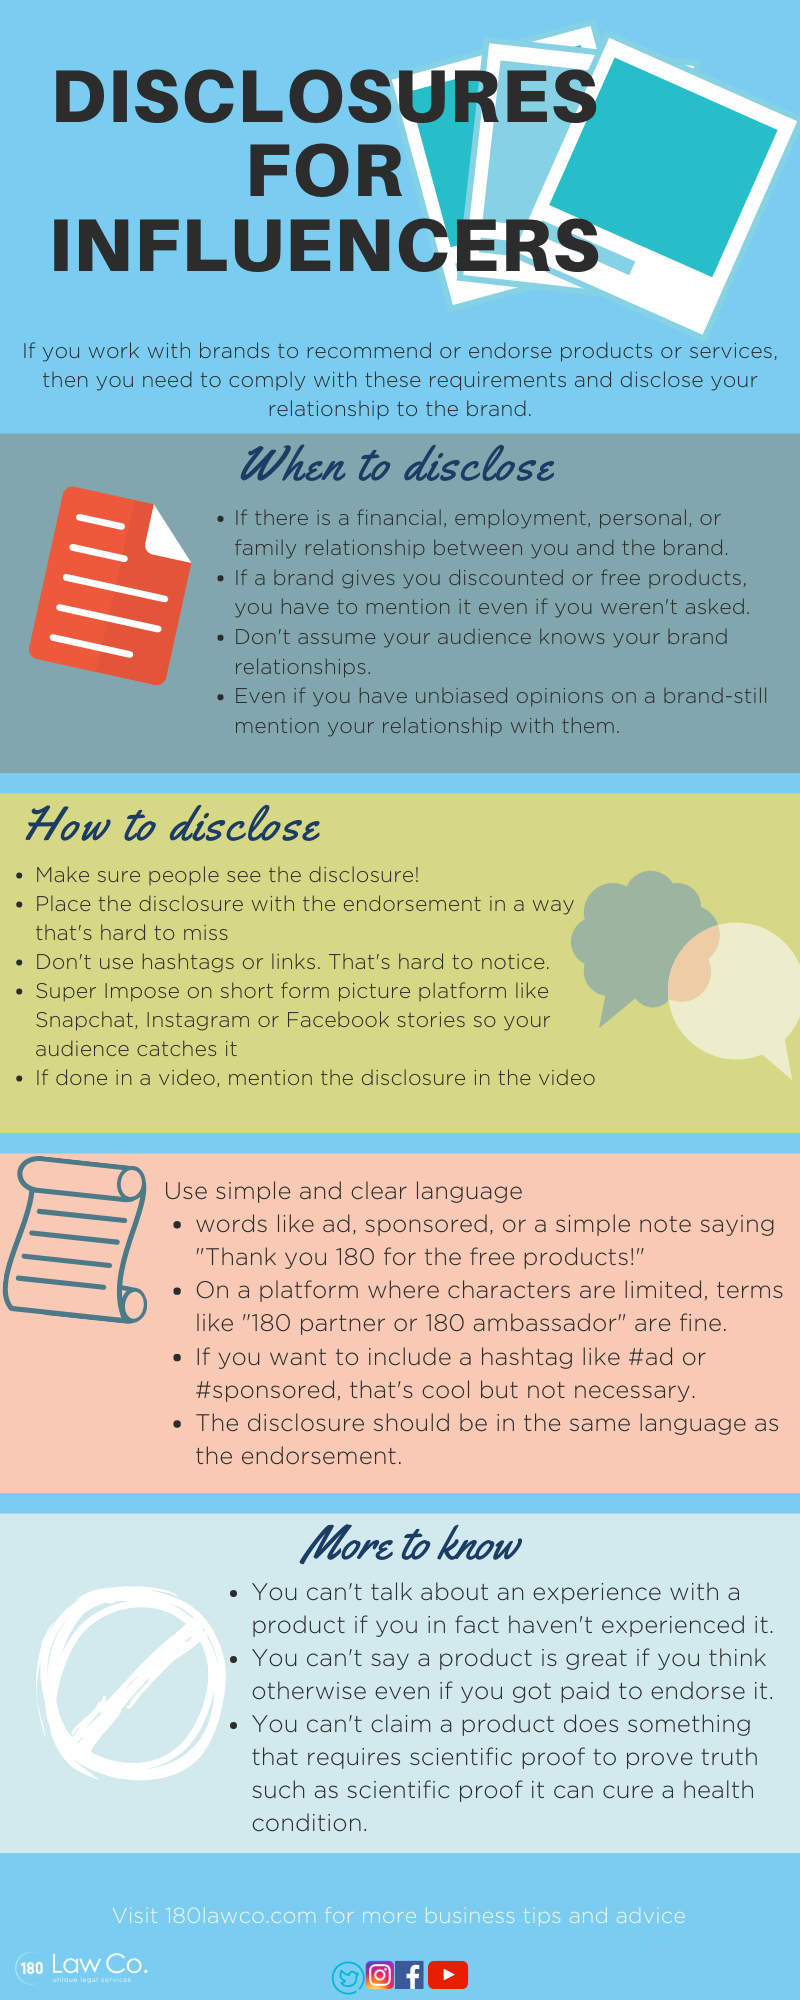 FTC Disclosures for Influencers guide and infographic